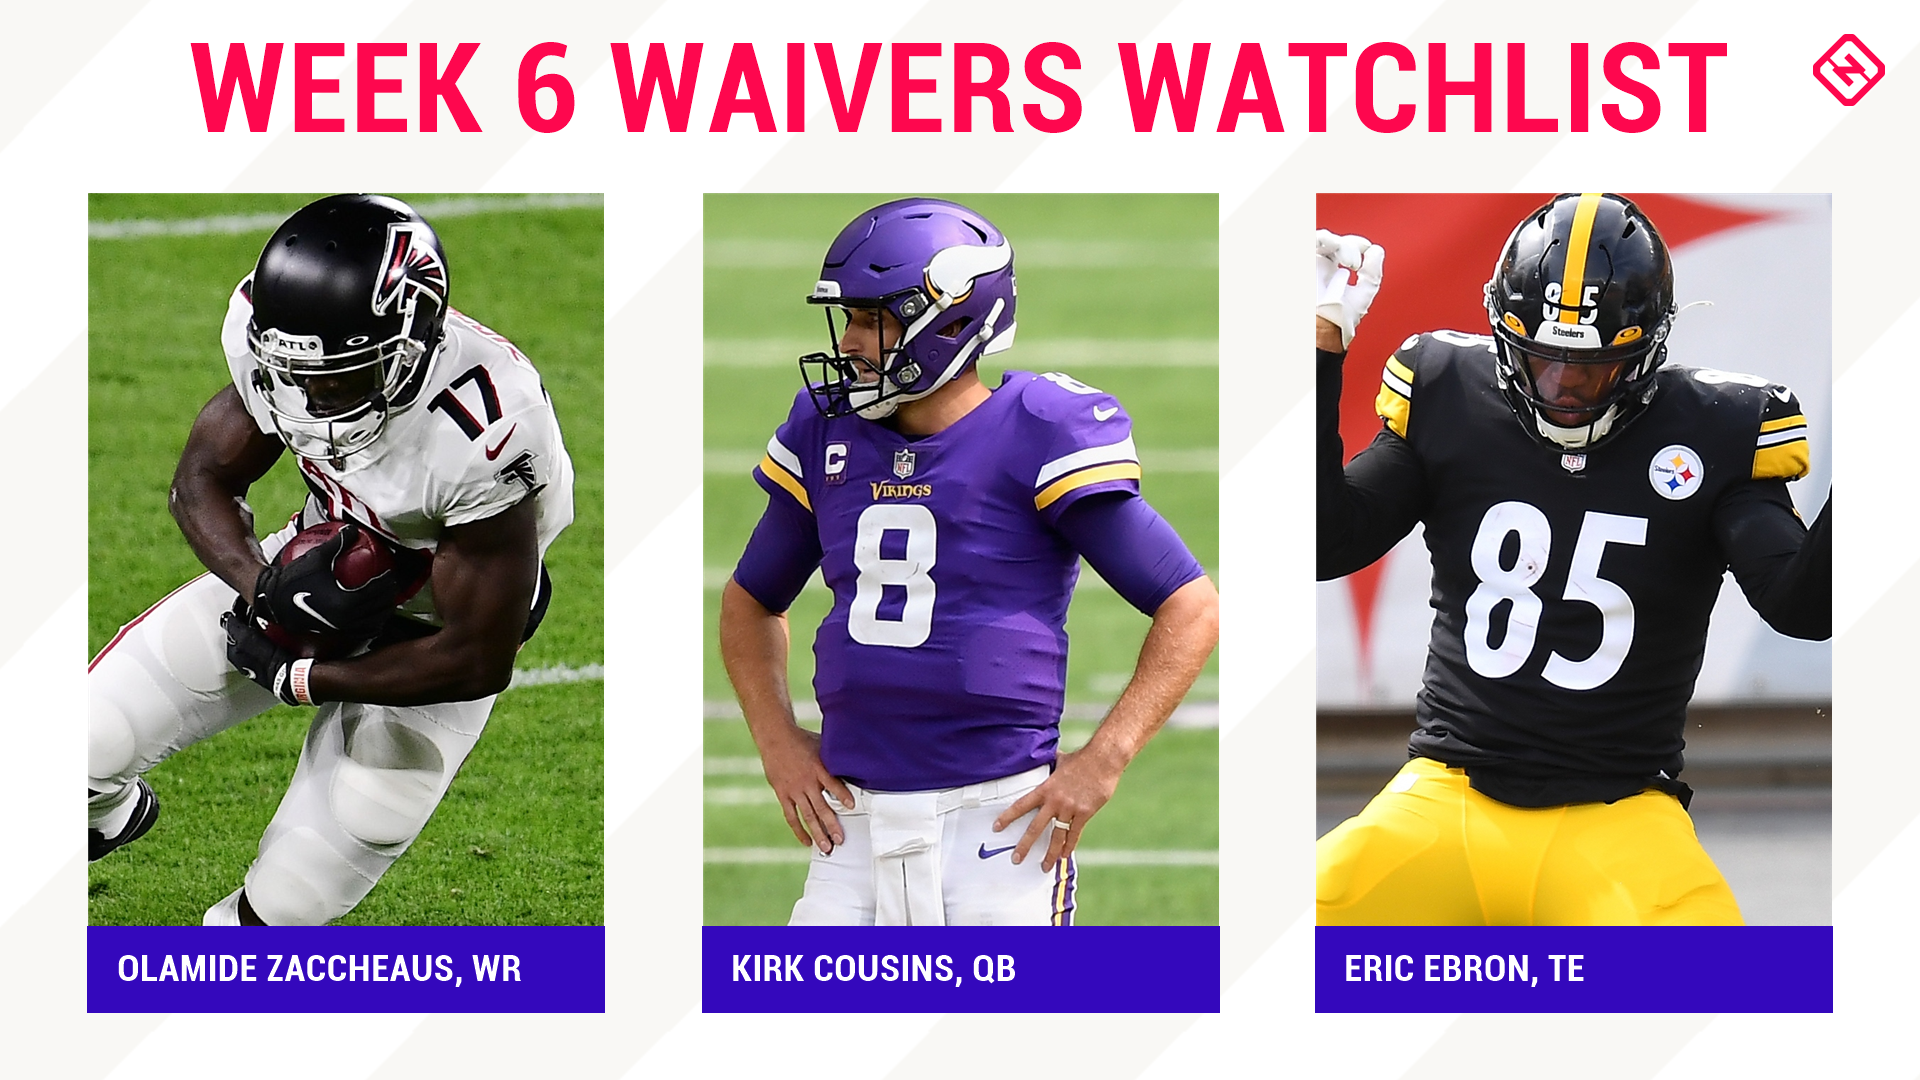 Fantasy Football Waiver Wire Watchlist for Week 6: Streaming targets, free agent sleepers include Olamide Zaccheaus, Kirk Cousins, Eric Ebron